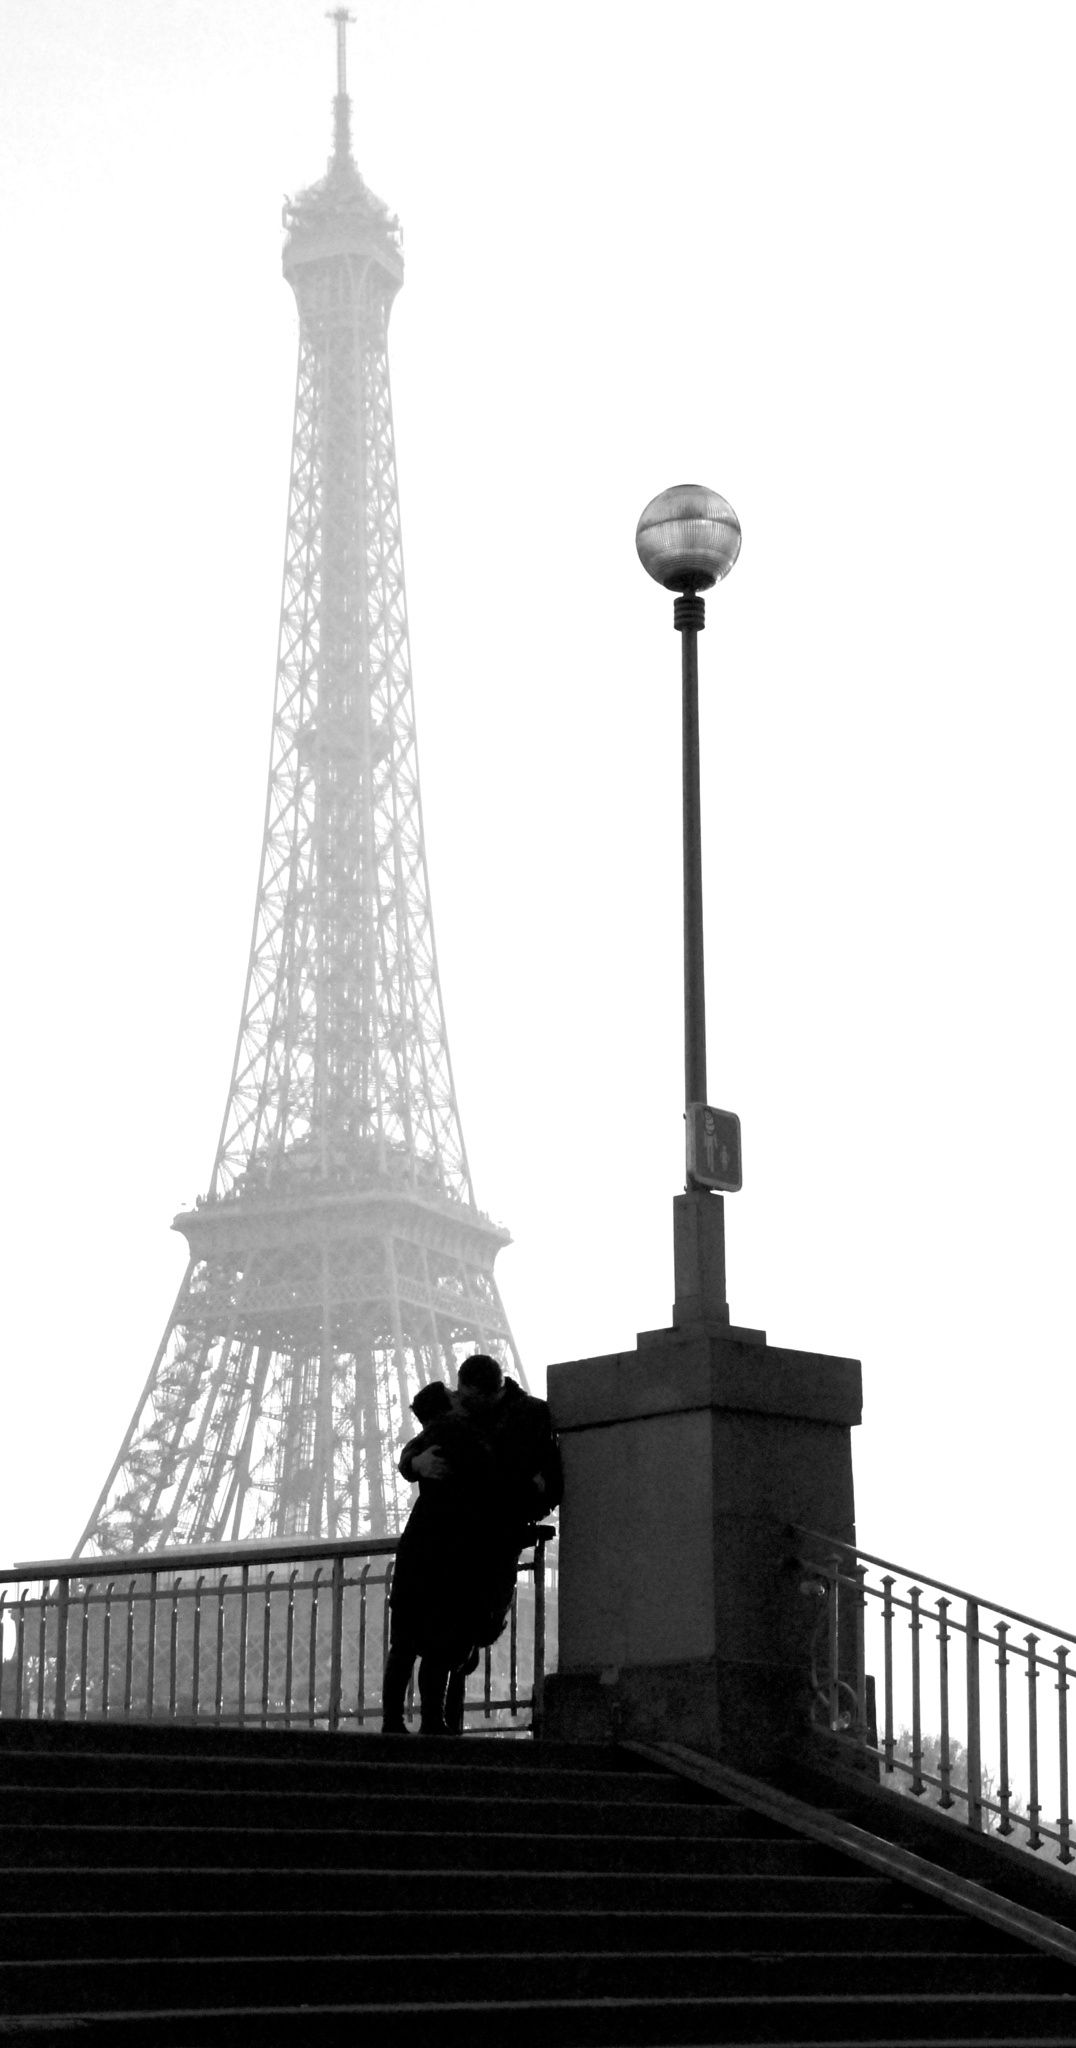 Their love   By Ricardas Jarmalavicius. Paris, France, 2007   Best Black and White Photography Valentine Eiffel Tower Love Lovers Romantic Amour